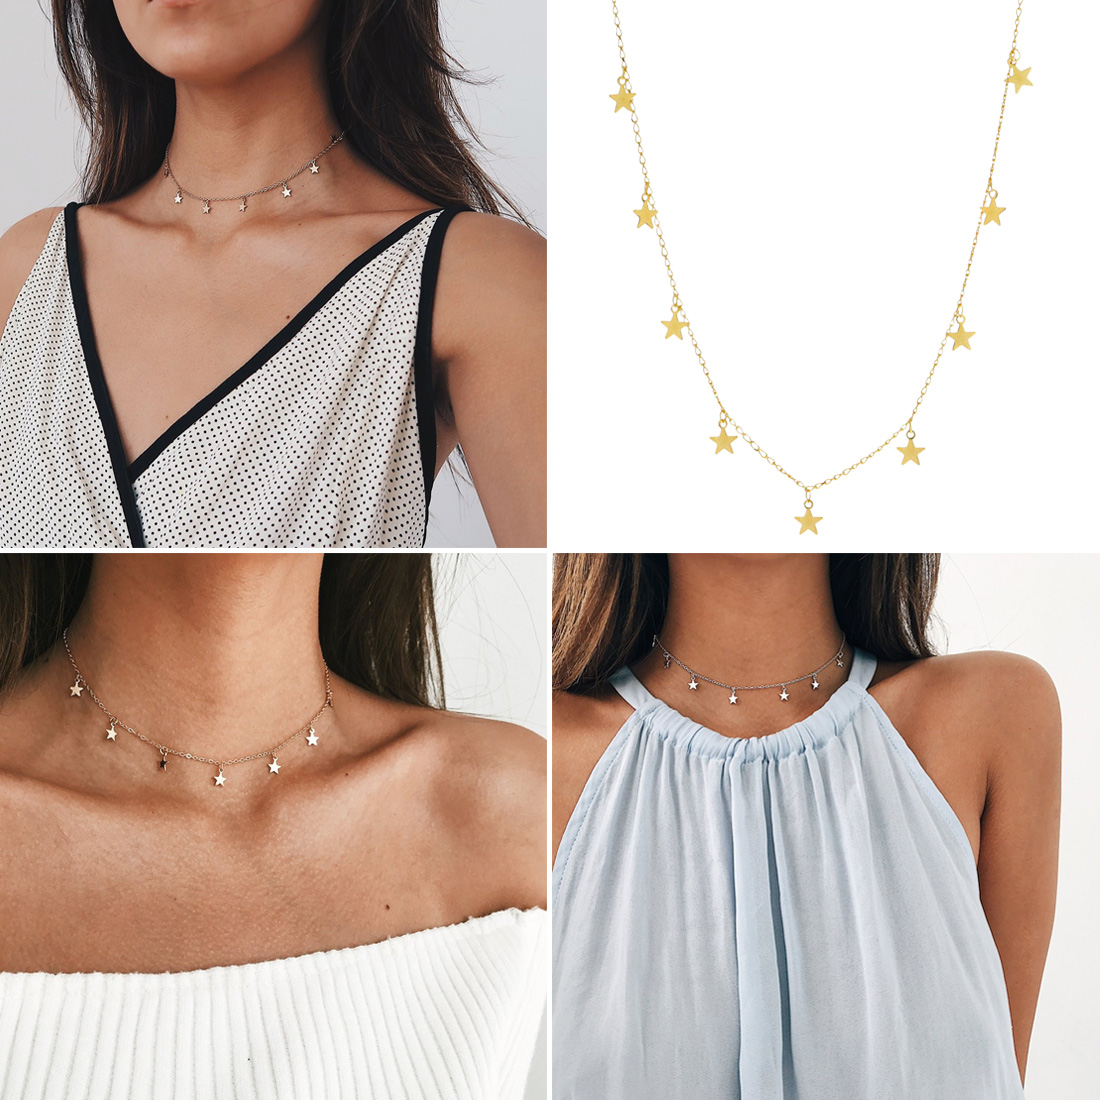 High Quality Hot Fashion Simple Five-pointed Star Pendant Necklace Beauty Small Pendant Simple Women's Necklace